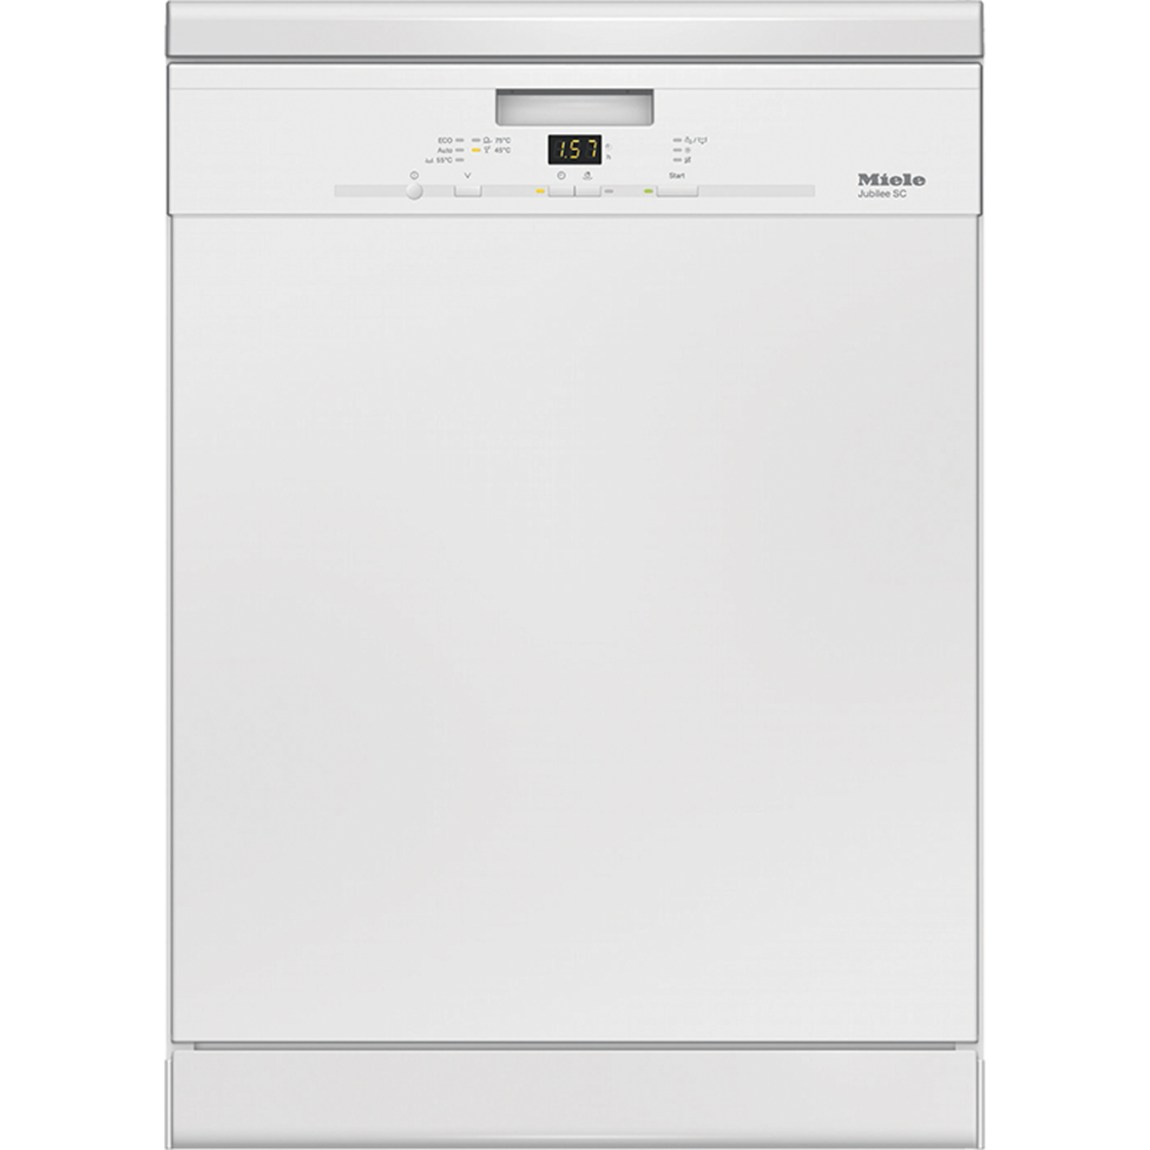 Miele Dishwasher Reviews >> Miele G4930sc Dishwasher Review My Three And Me